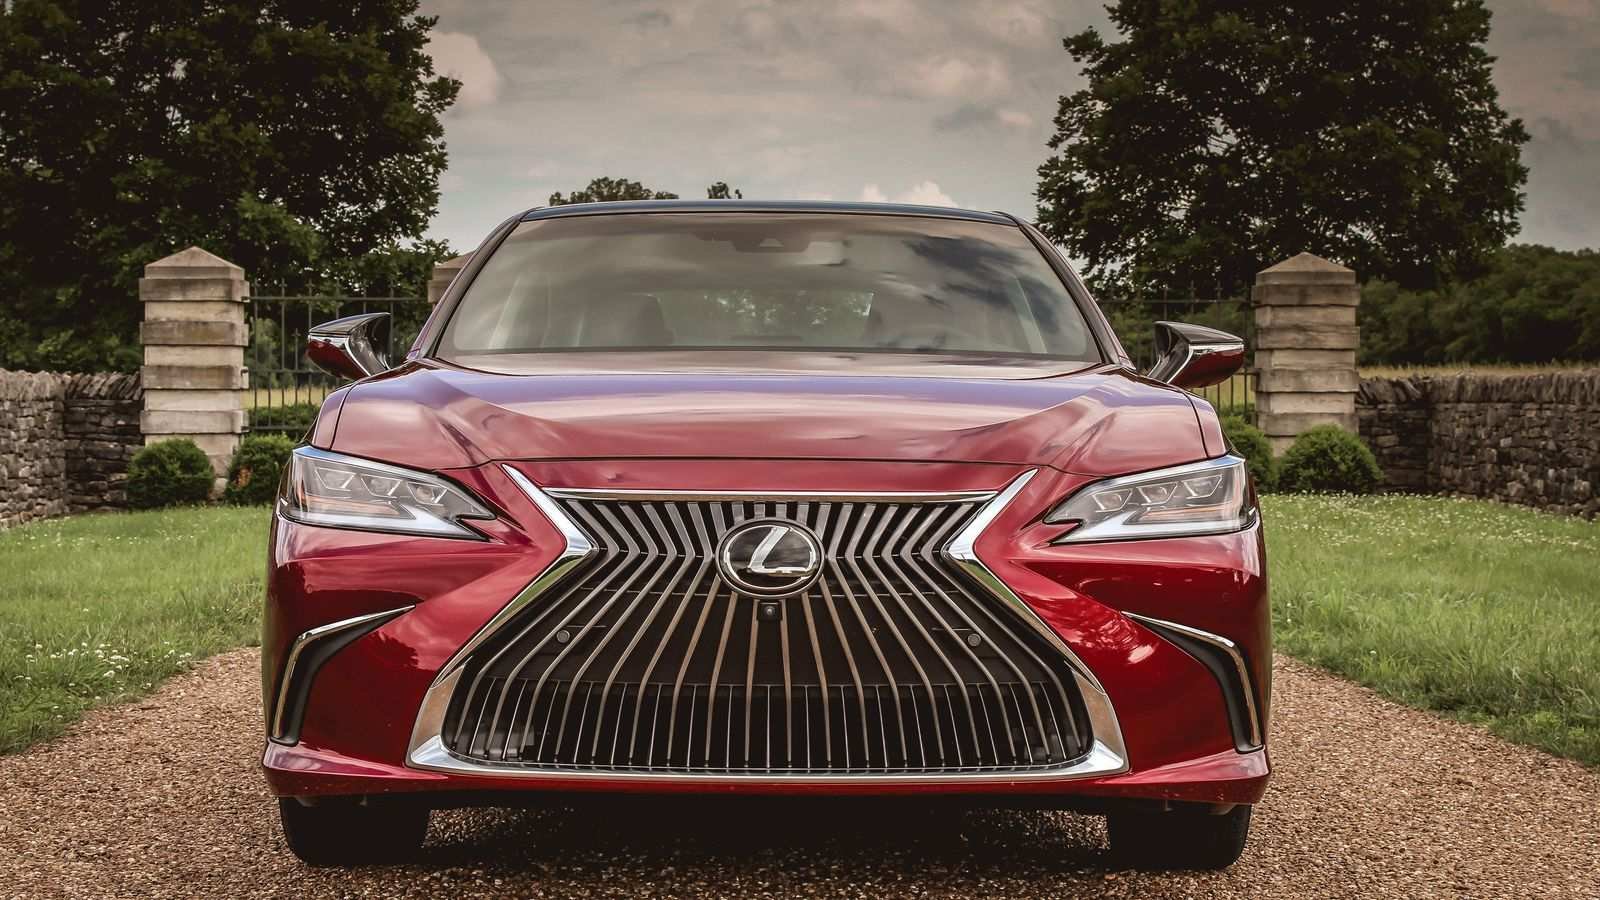 73 All New 2019 Lexus Hybrid Images